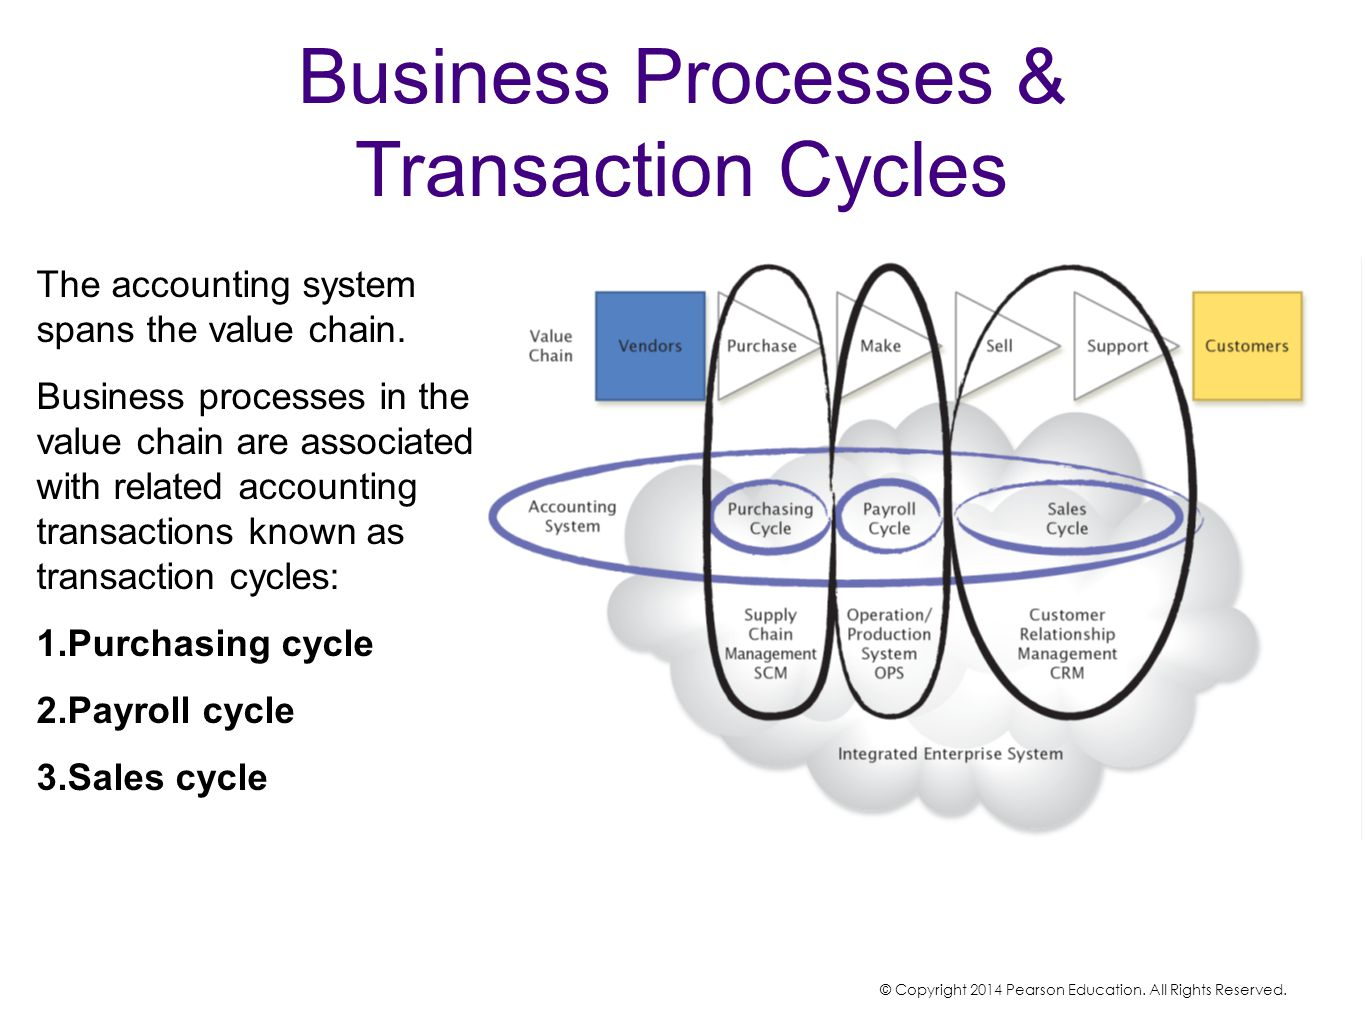 Business Processes & Transaction Cycles